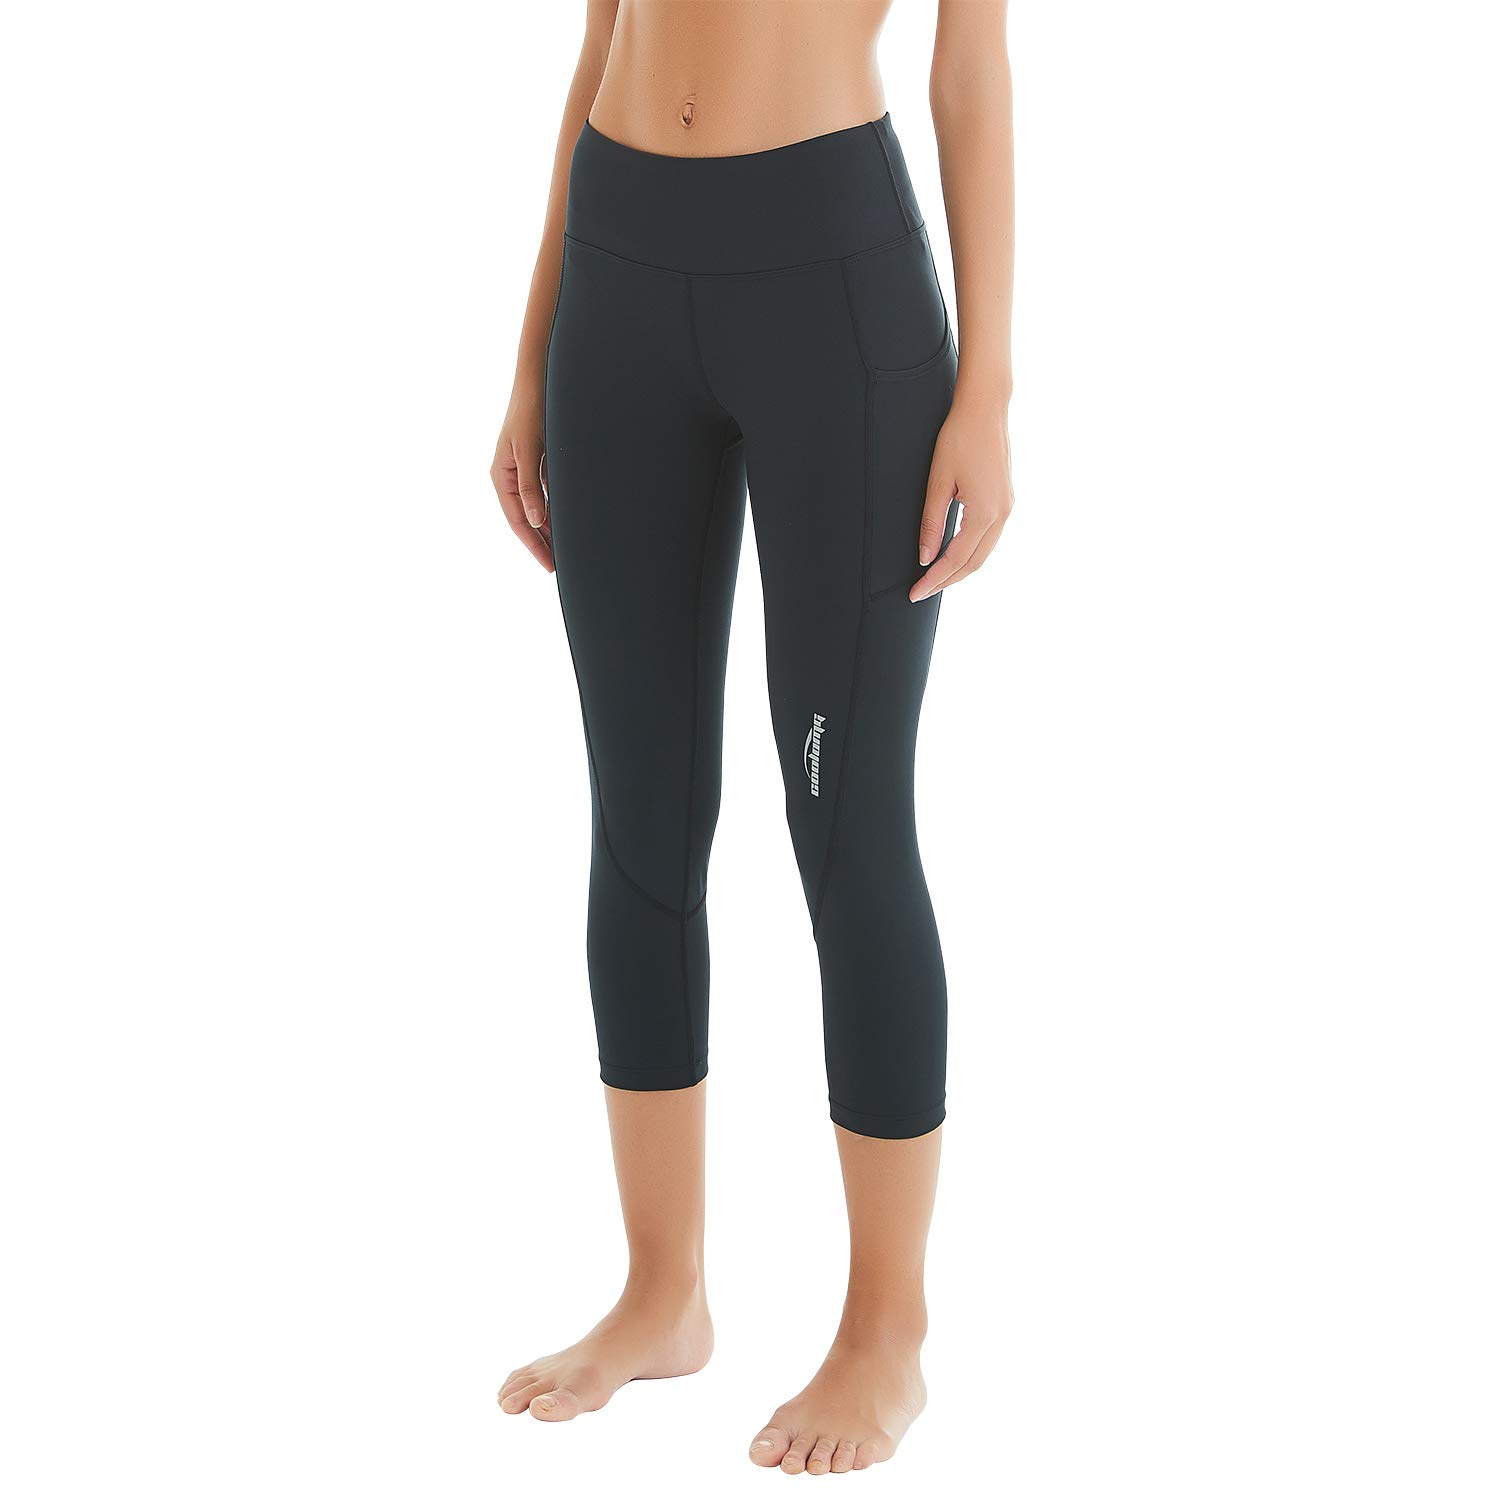 12cd9f2d5f Amazon.com : COOLOMG Women's High Waist Yoga Pants Compression Running  Tights Sports Leggings Non See-Through Side Pockets : Clothing